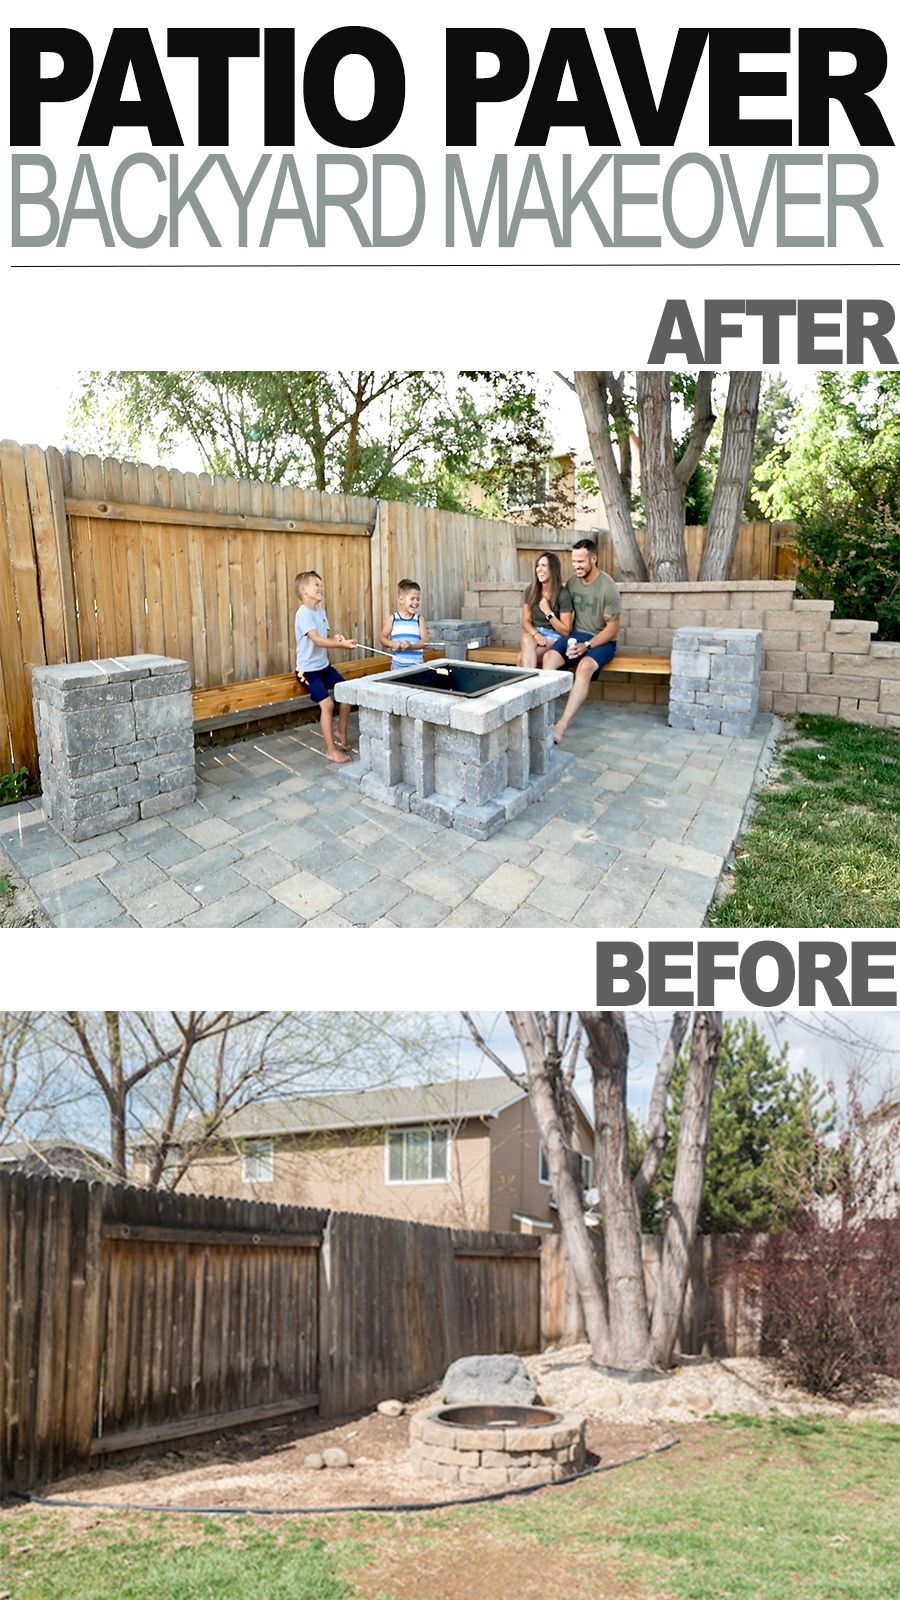 Photo of DIY Patio Paver Backyard Makeover